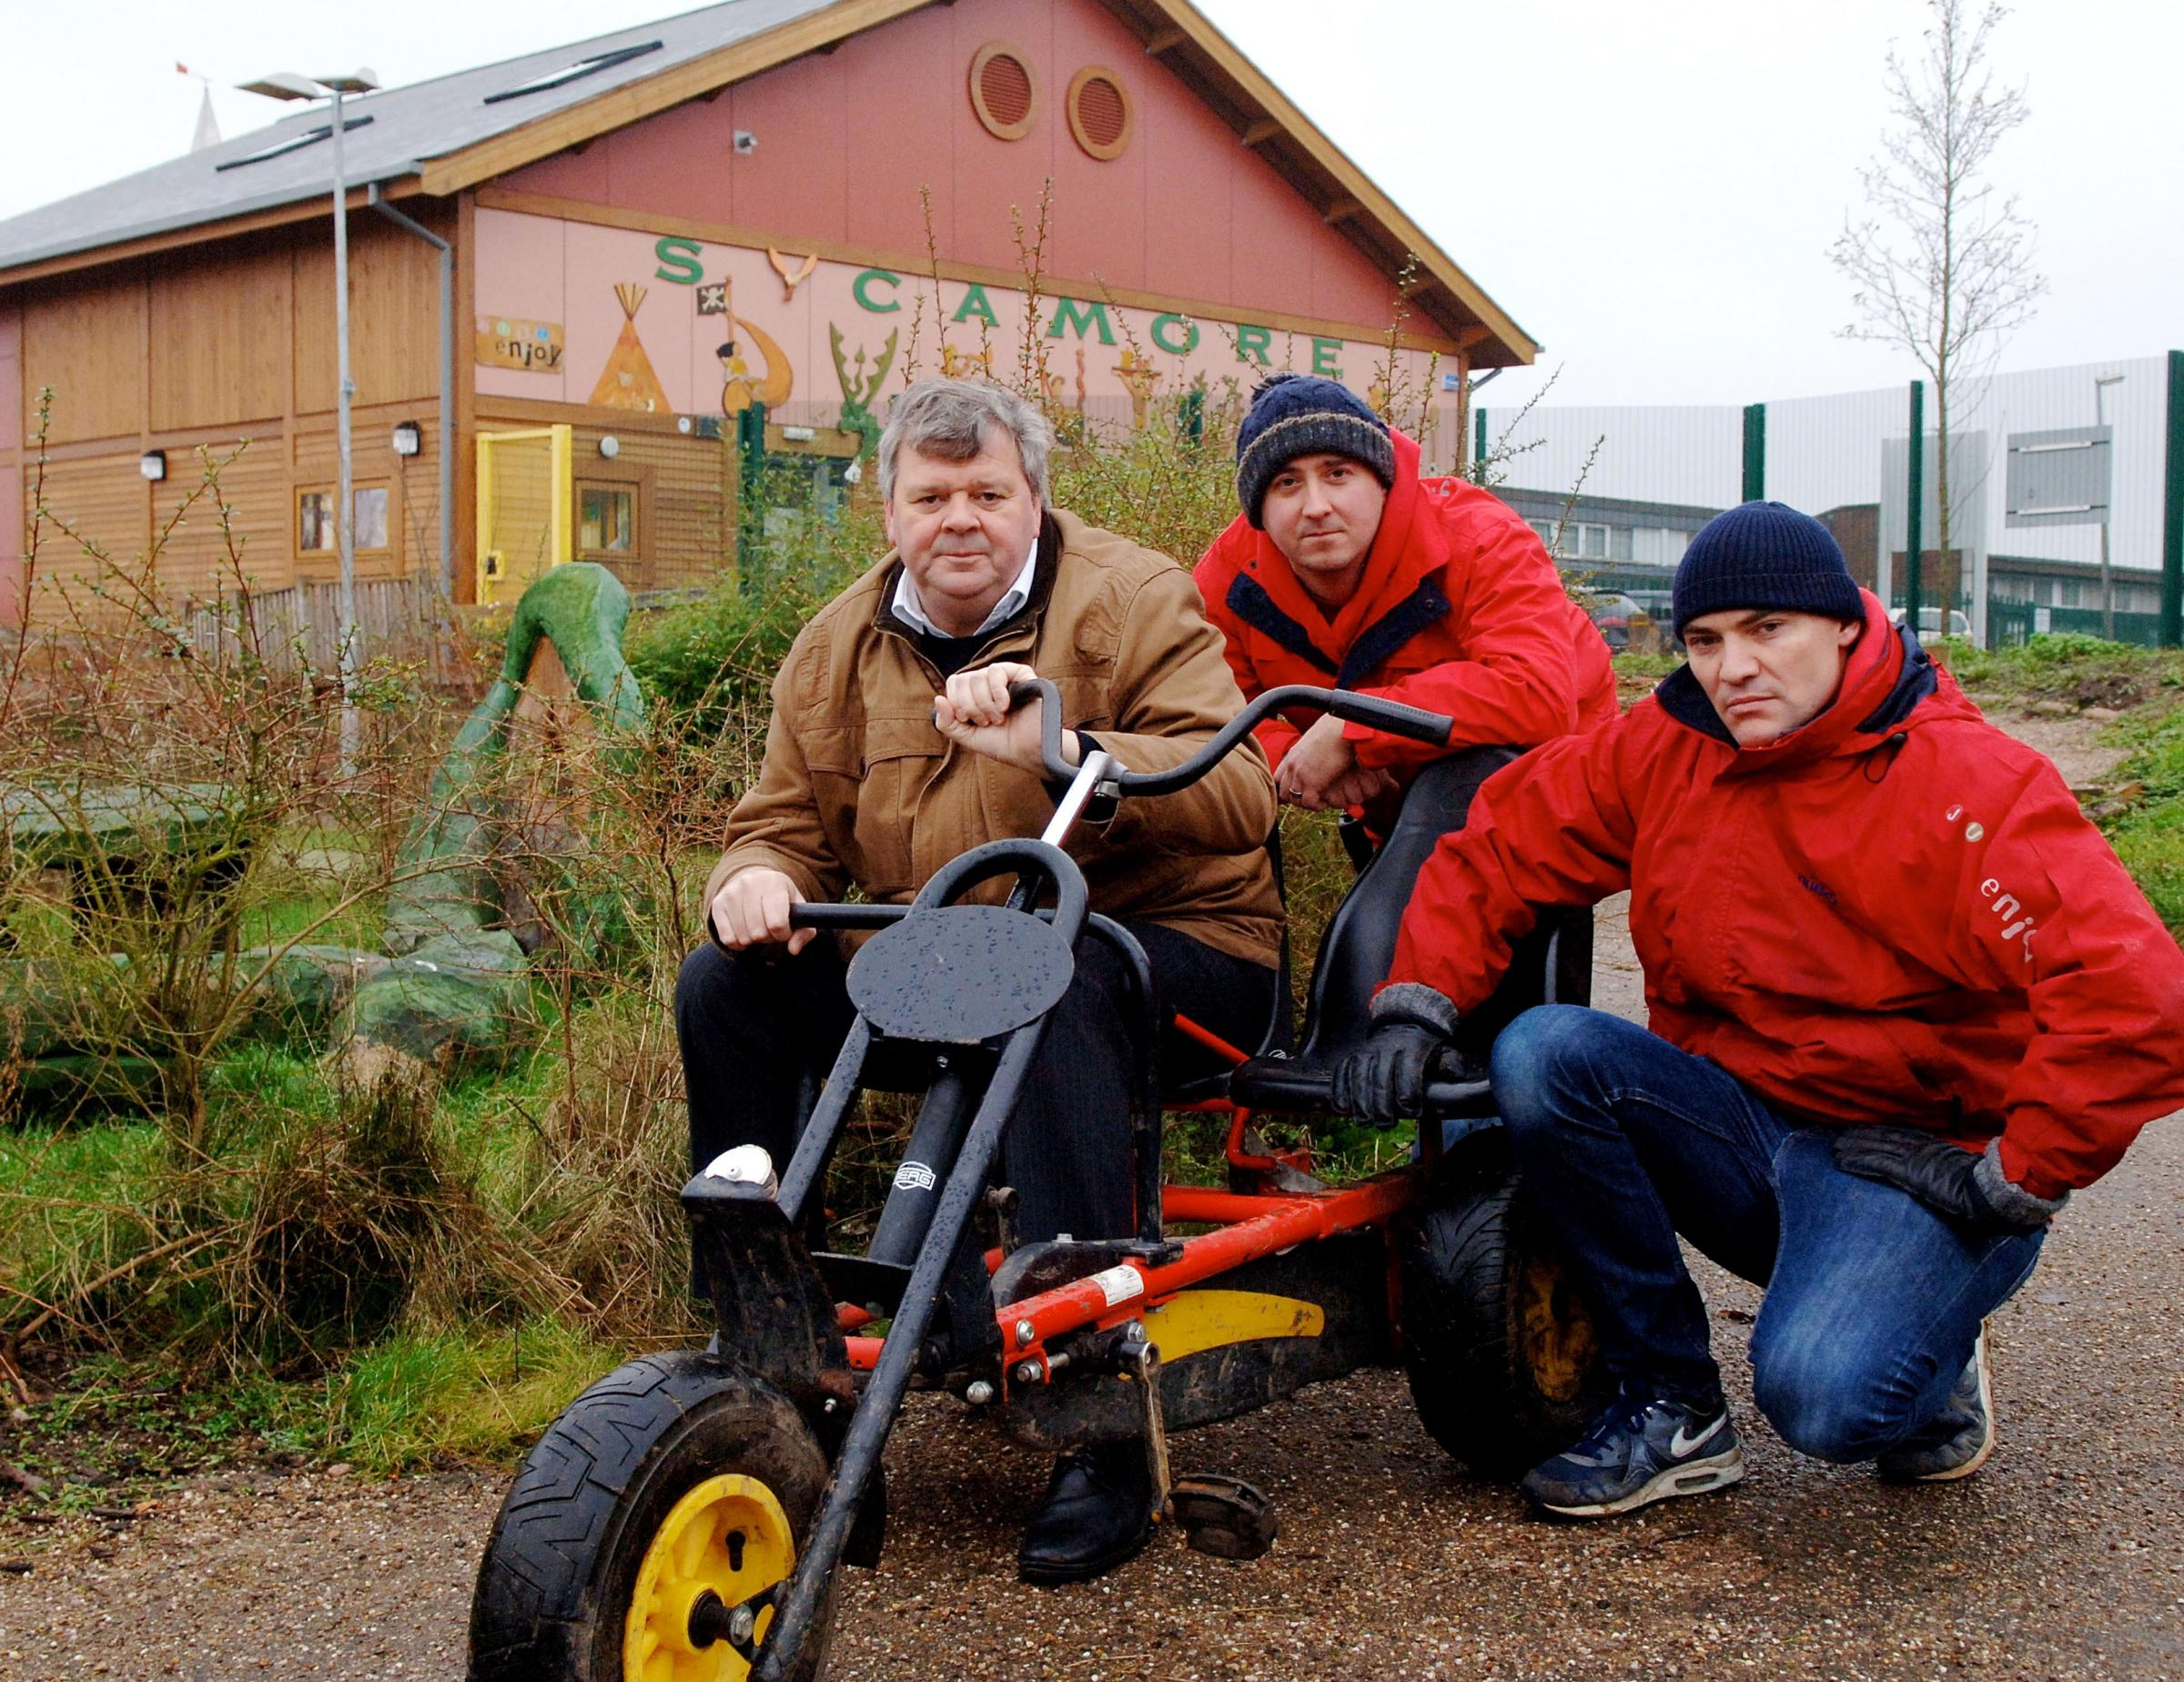 Cllr Tim Crumpton with Sycamore Centre staff Will Ganniclifft and Keith Rogers with a kart similar to items stolen from the centre